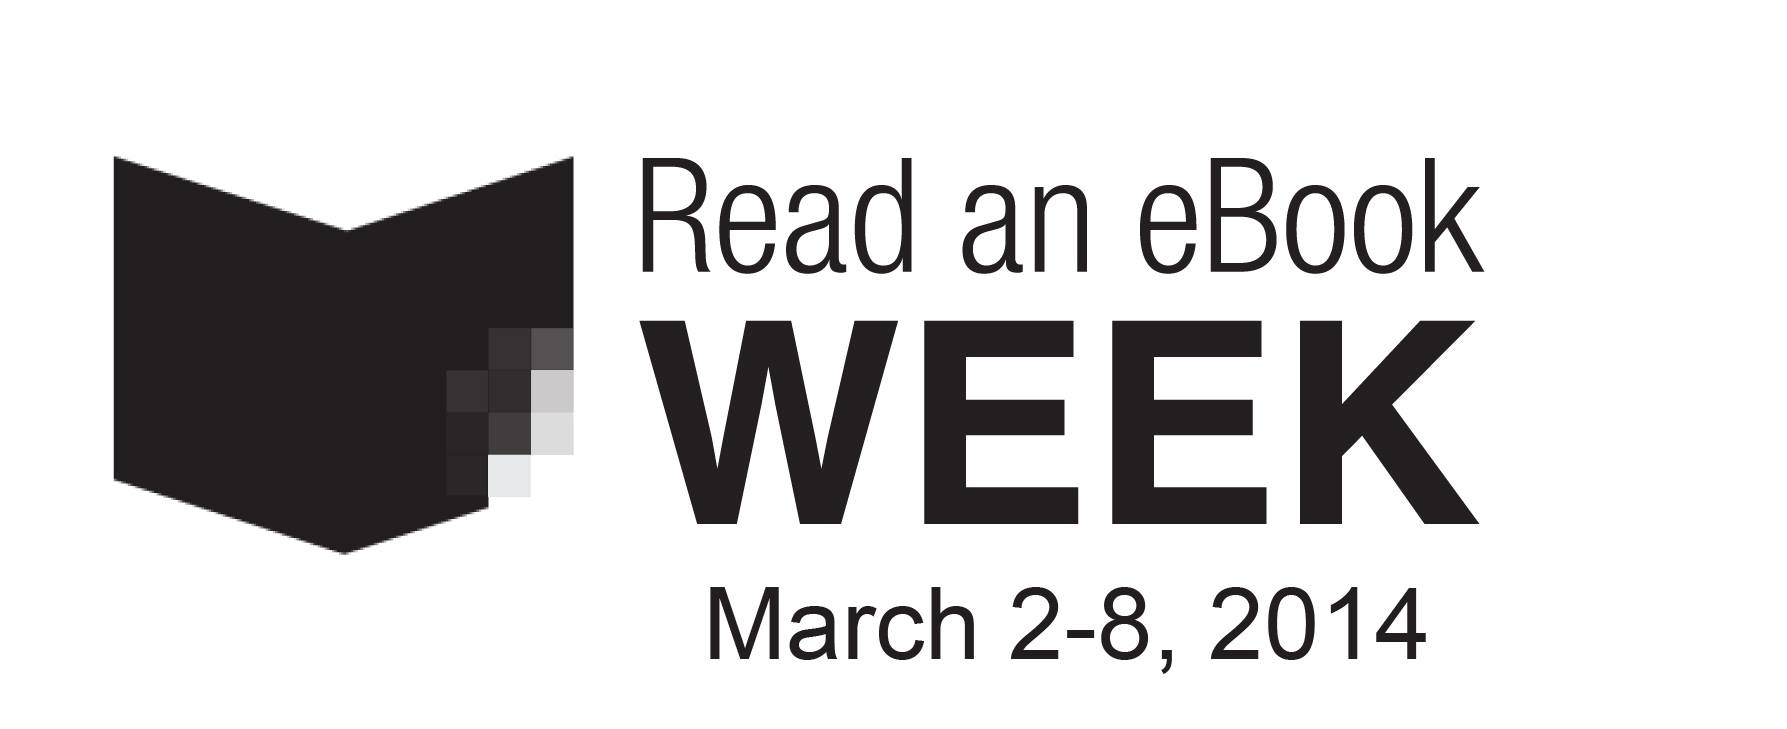 Read an Ebook Week 2014